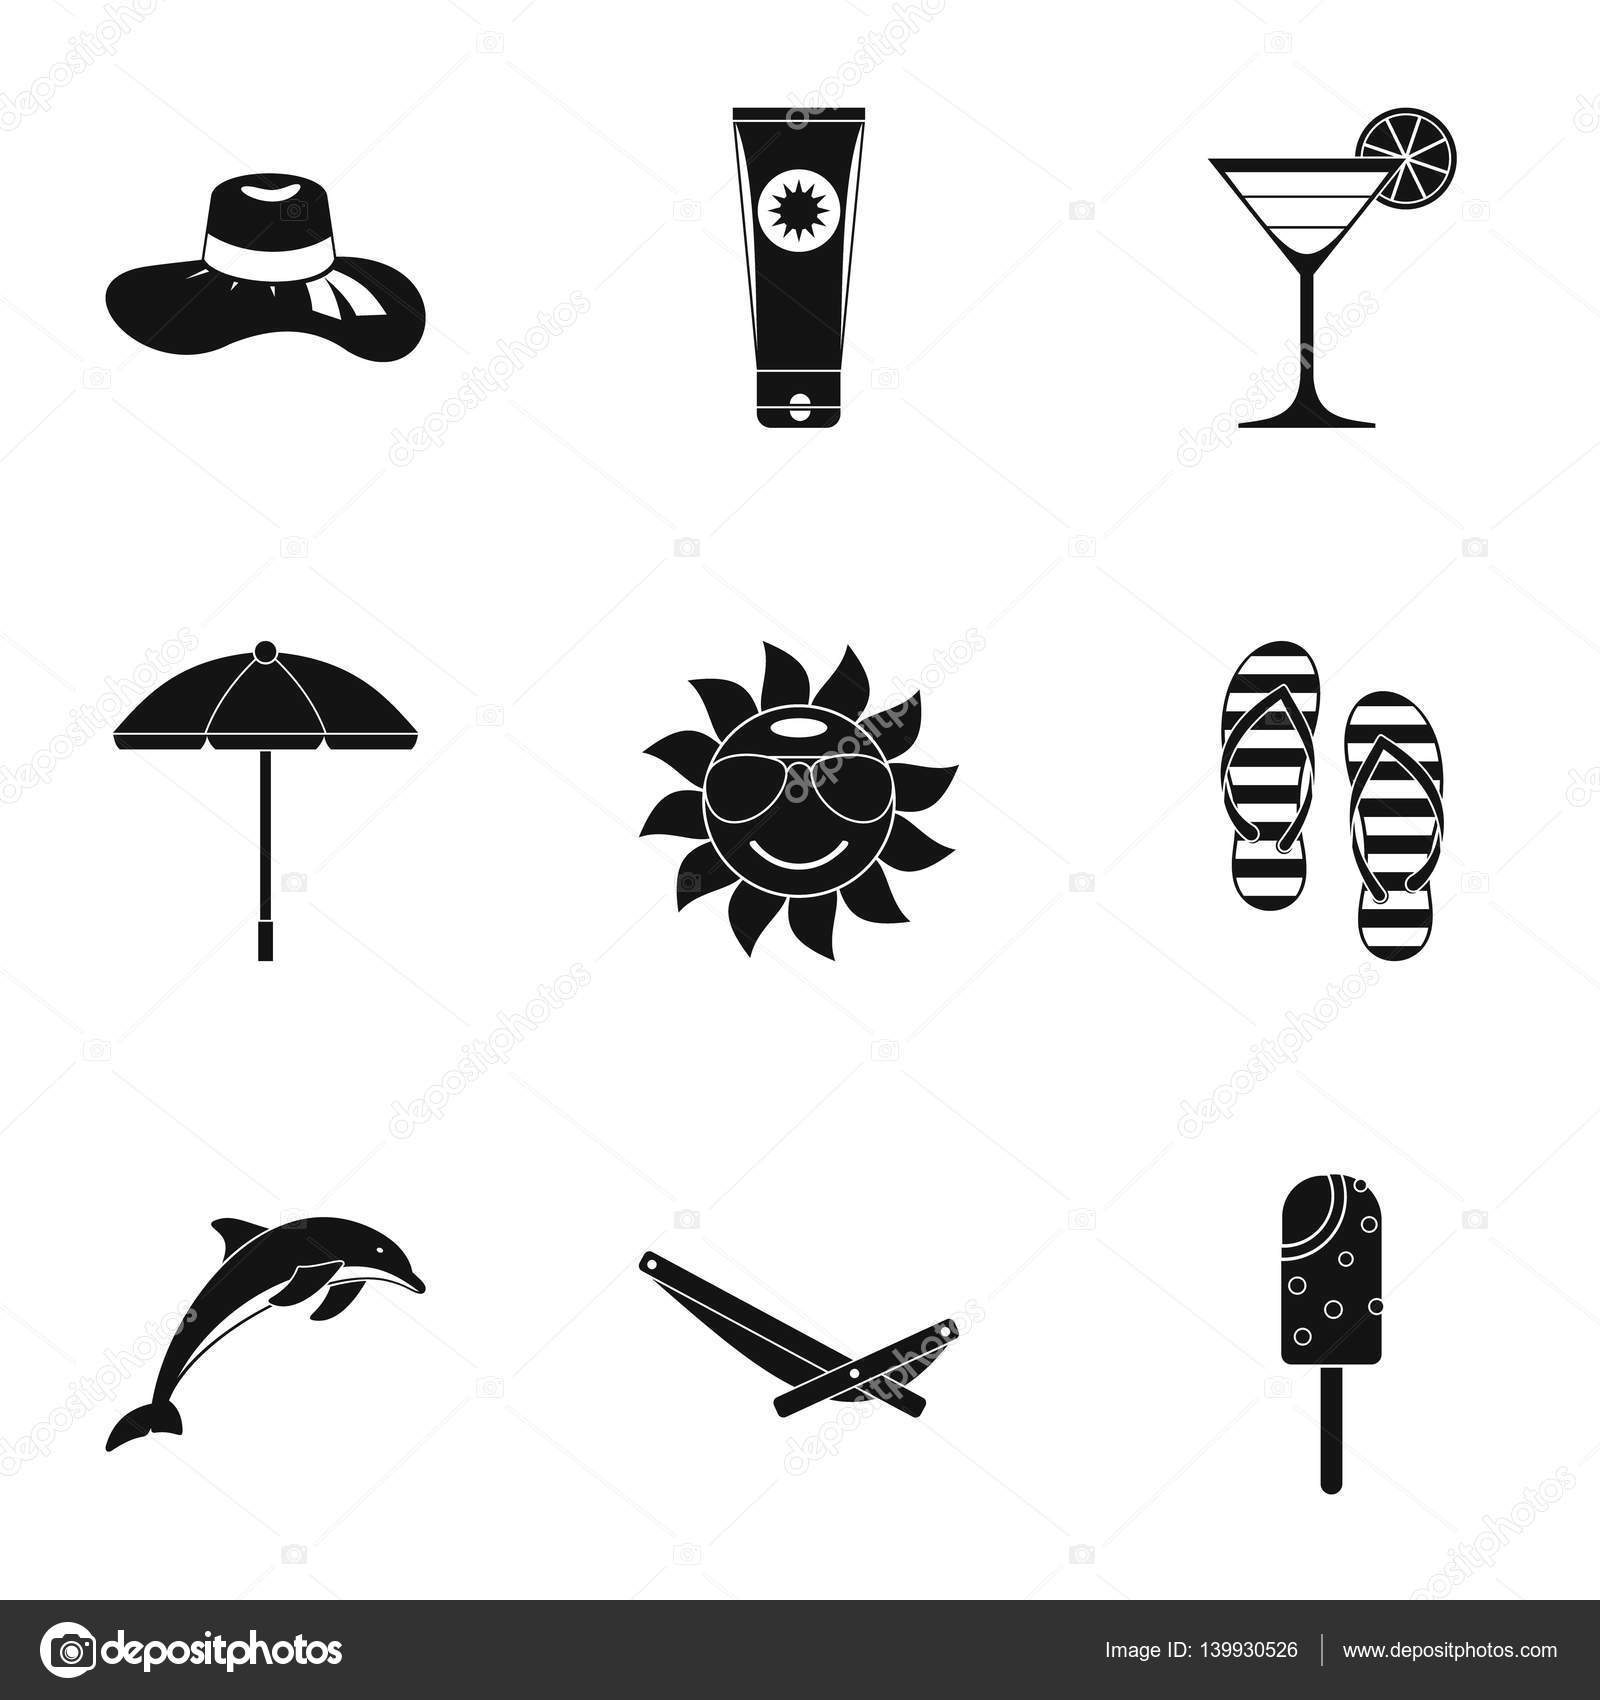 Journey to sea icons set simple style stock vector ylivdesign journey to sea icons set simple style stock vector biocorpaavc Choice Image